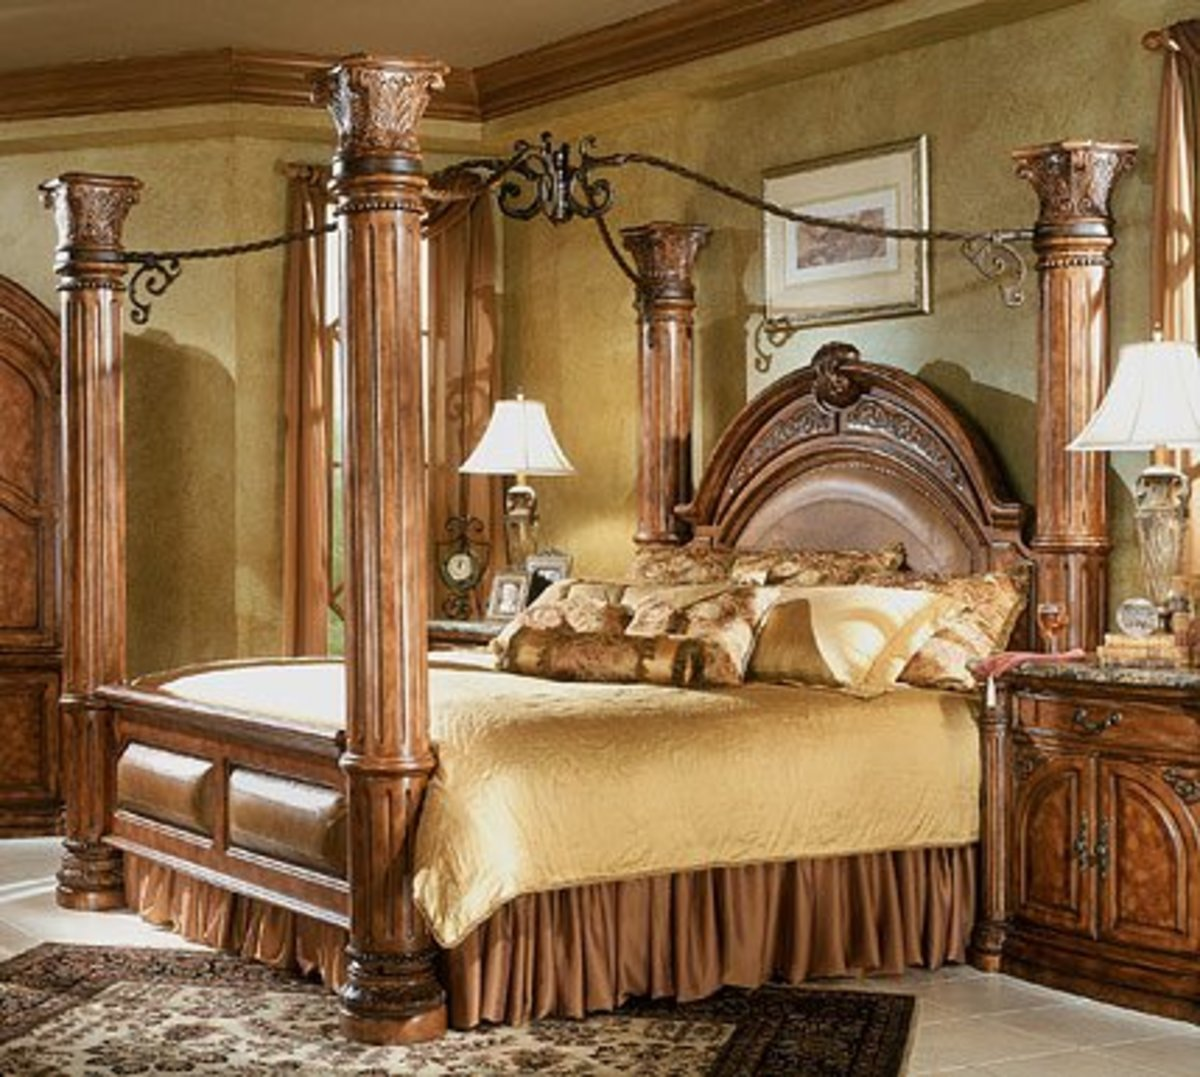 Furniture Fit For Kings and Queens